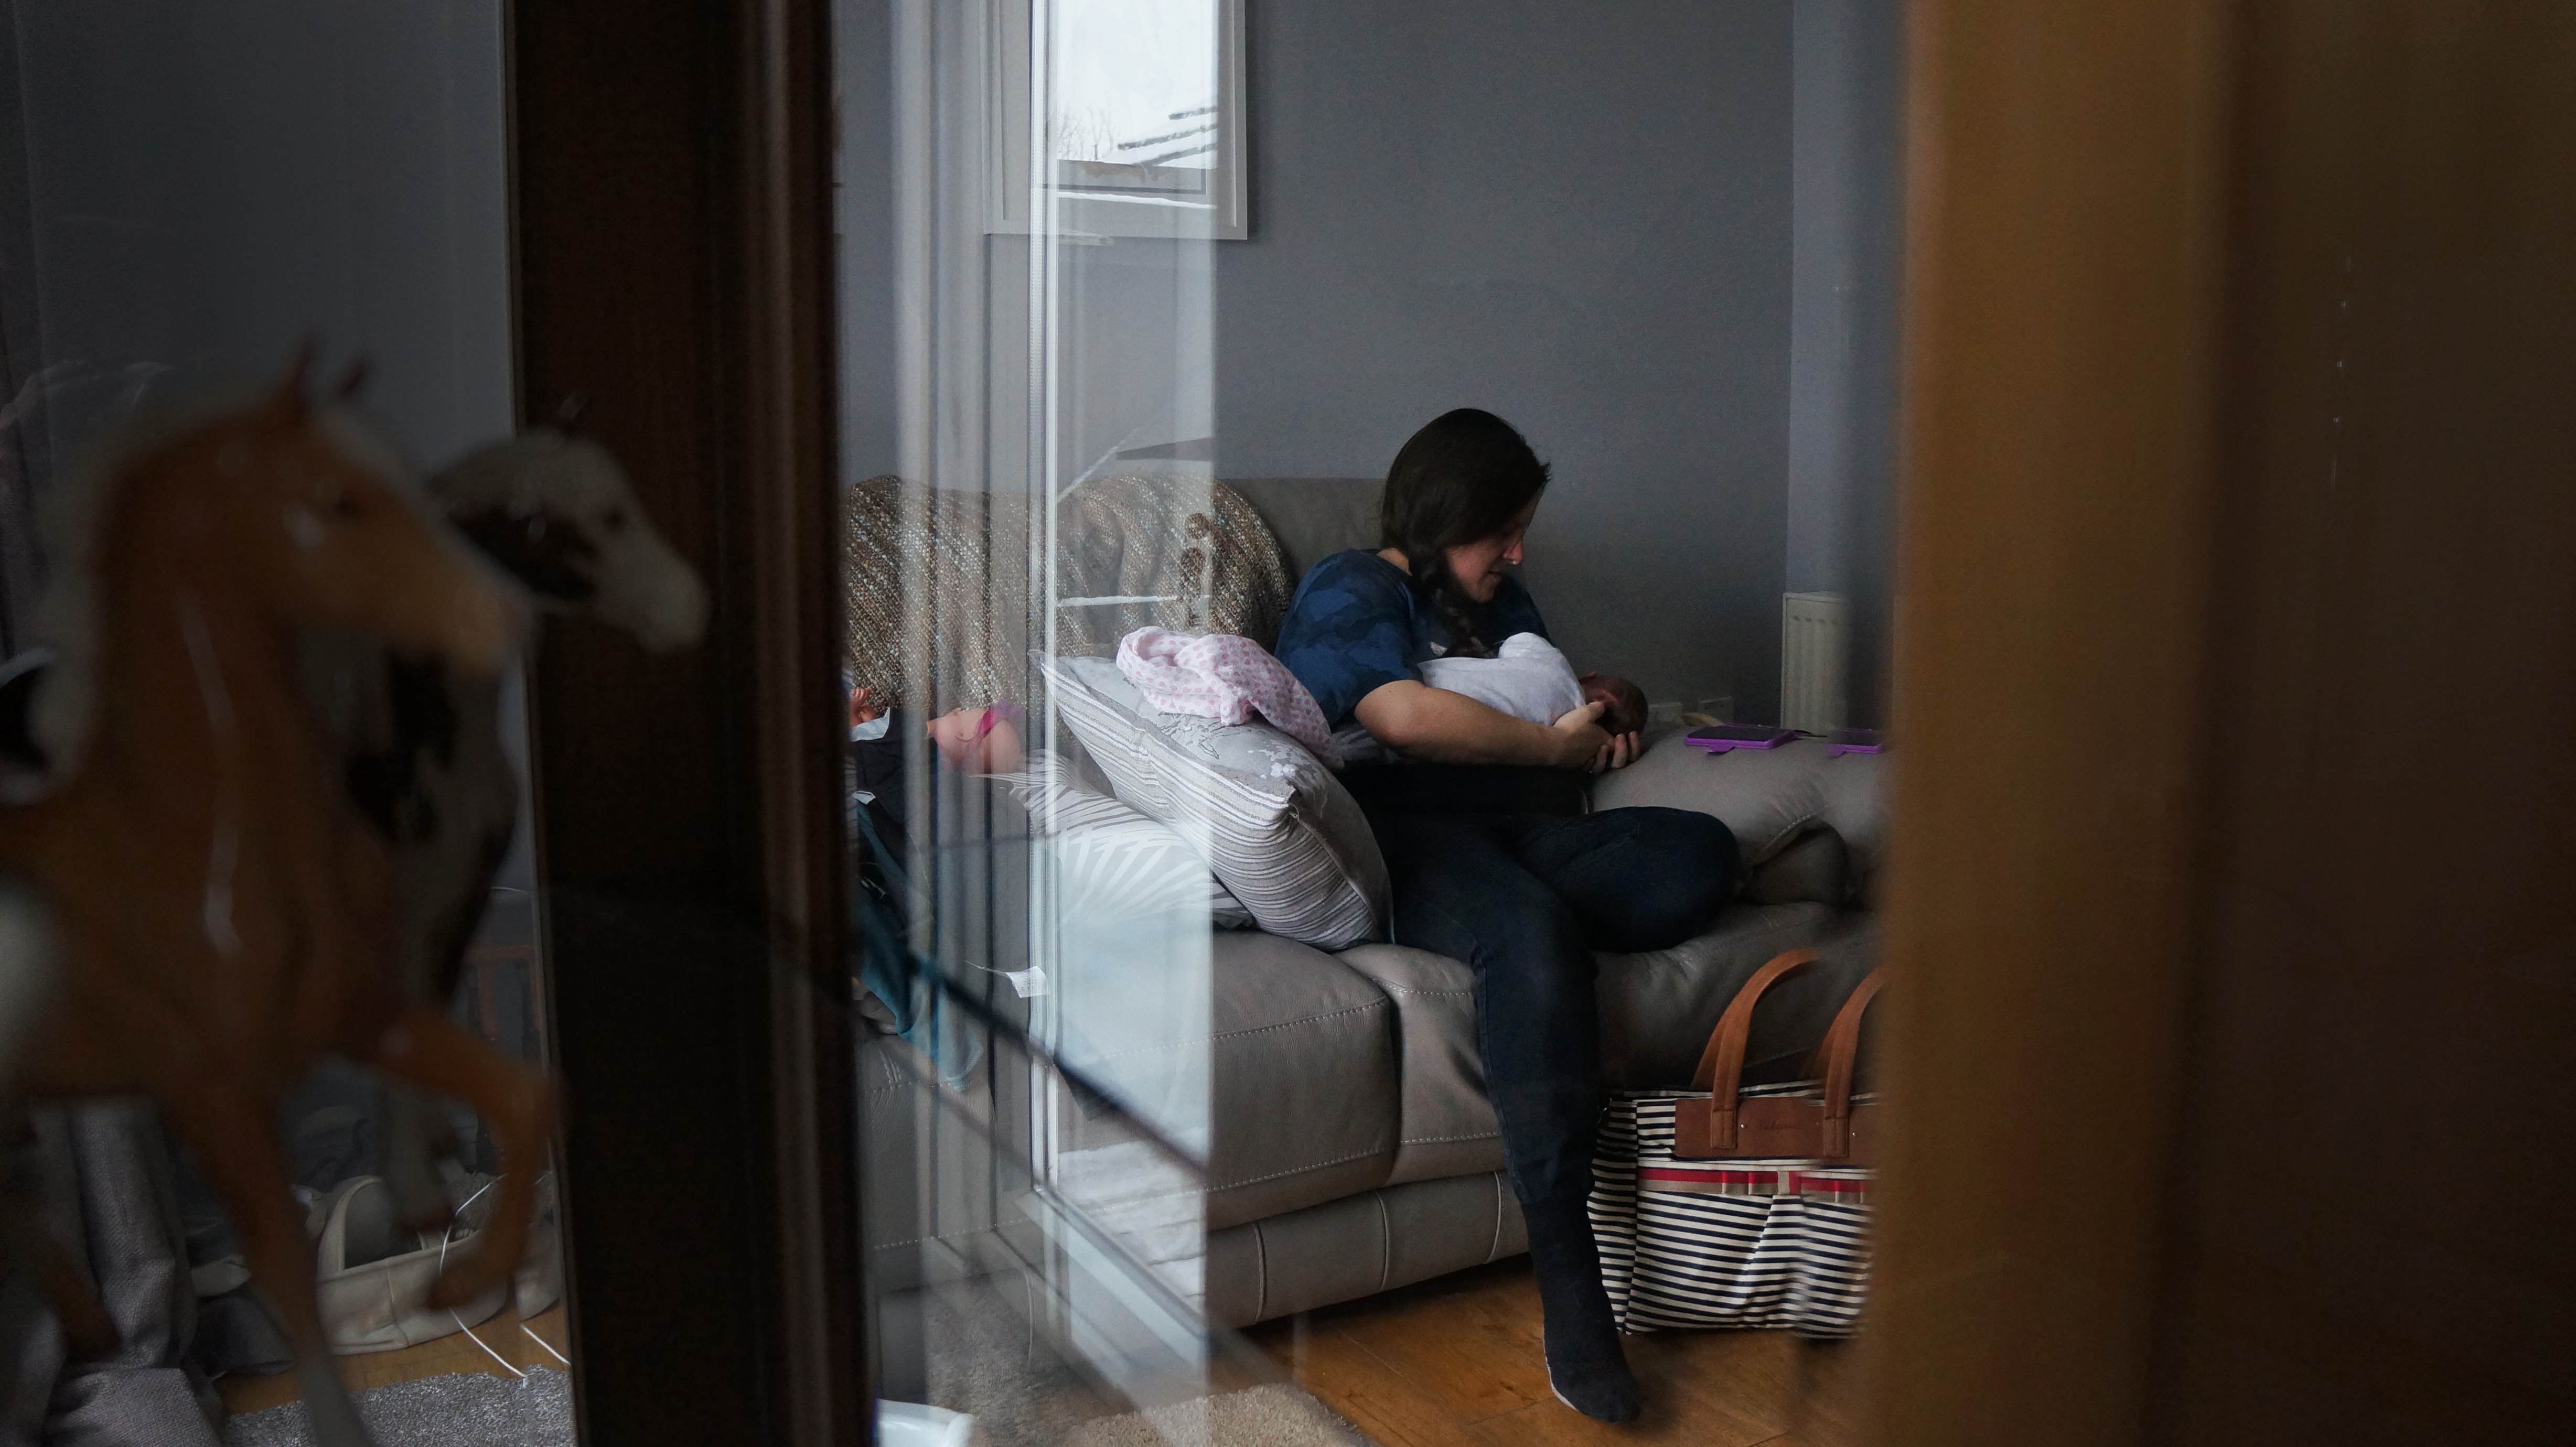 A mum sits on her grey leather sofa breastfeeding her newborn daughter